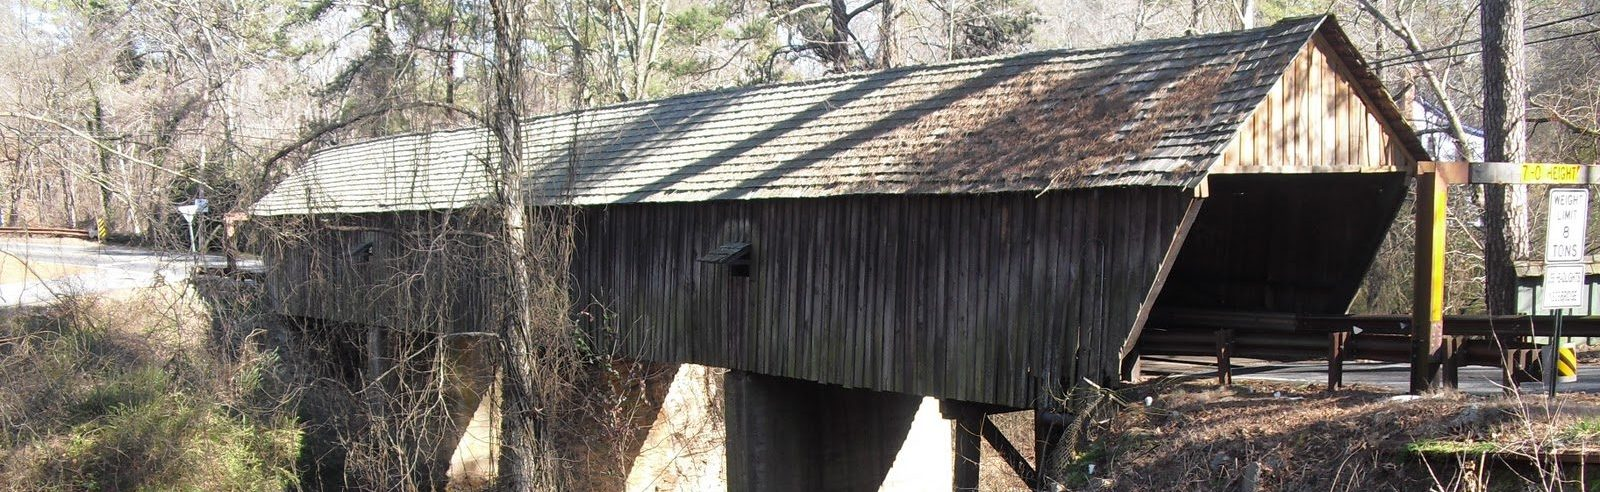 Concord Covered Bridge Historic District